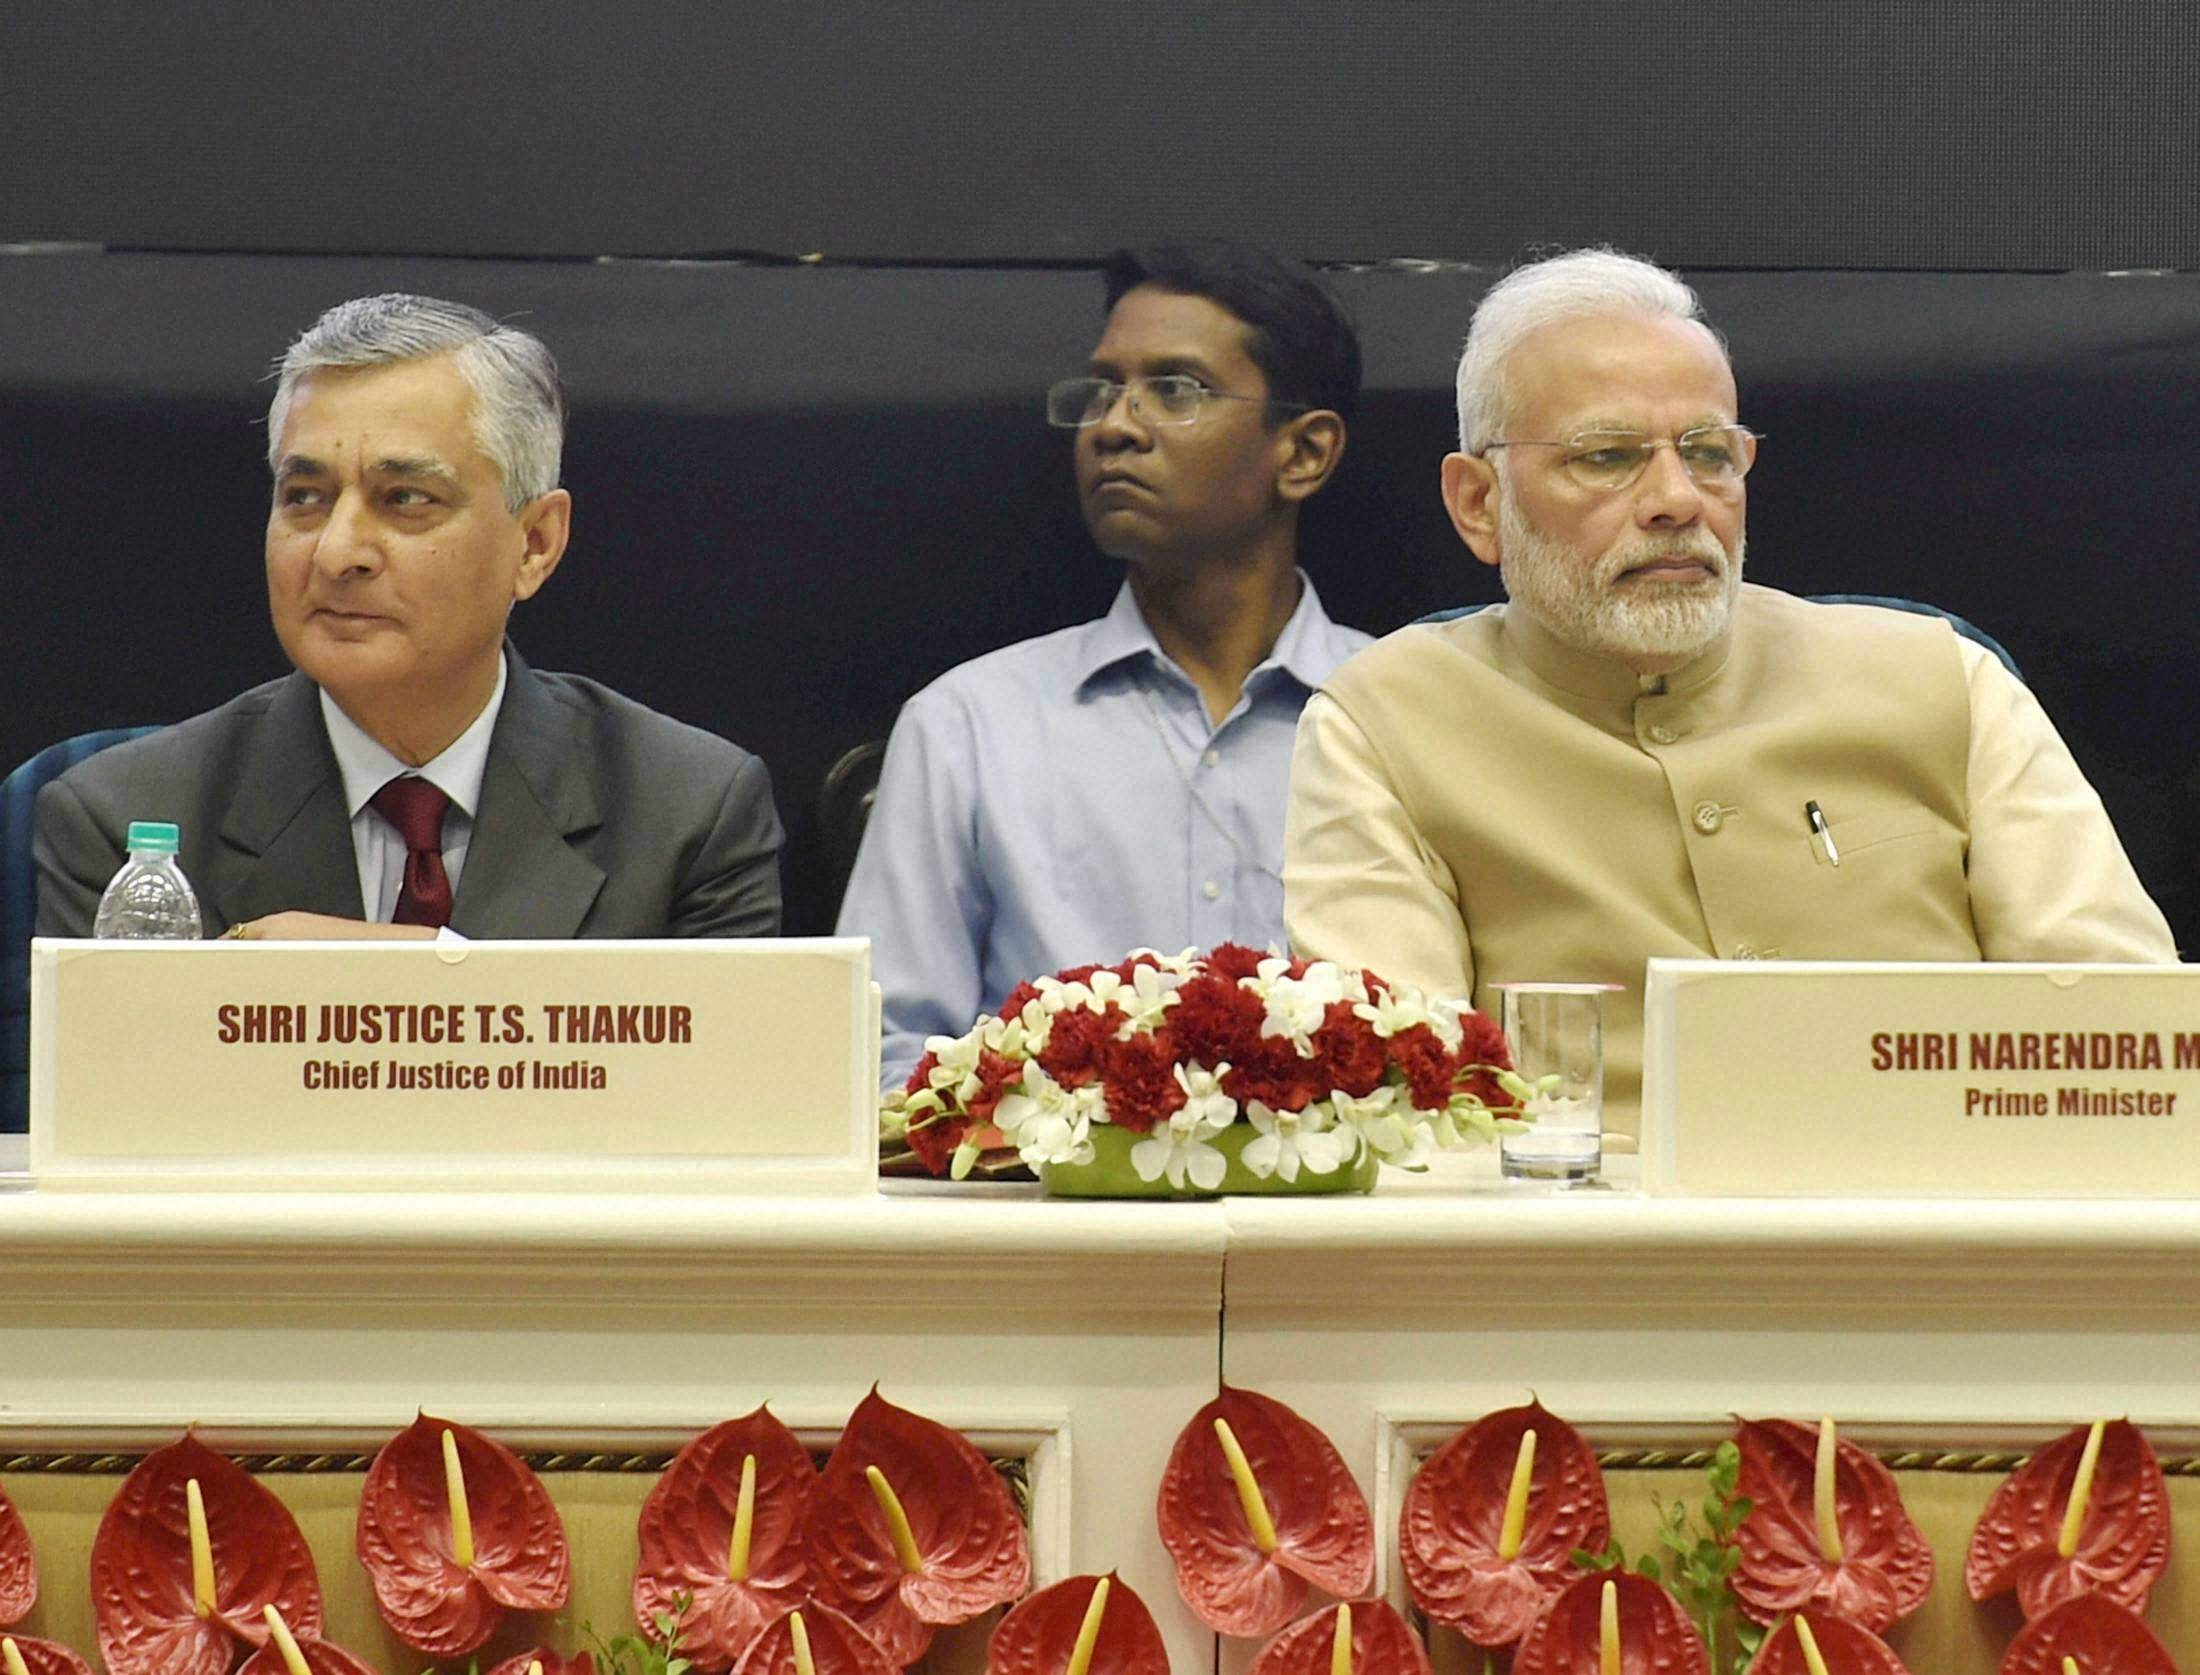 Prime Minister Narendra Modi and Chief Justice of India TS Thakur during the 50th anniversary function of establishment of the High Court of Delhi. Photo: PTI